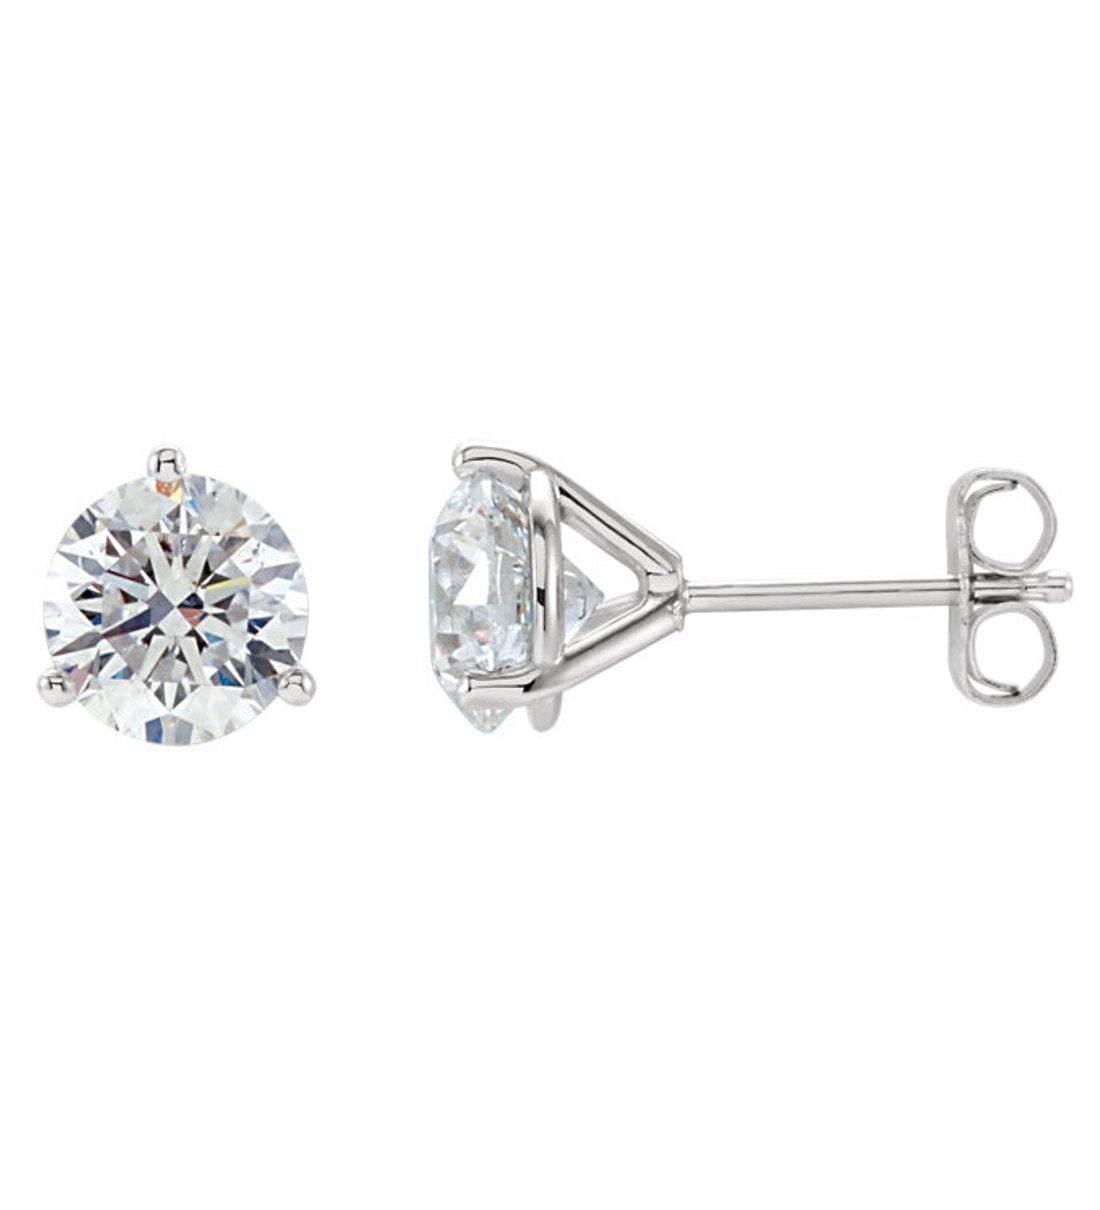 1fe72a4c8 1 5 2 Ctw Si2 3 G H Diamond Tail Style Stud Earrings